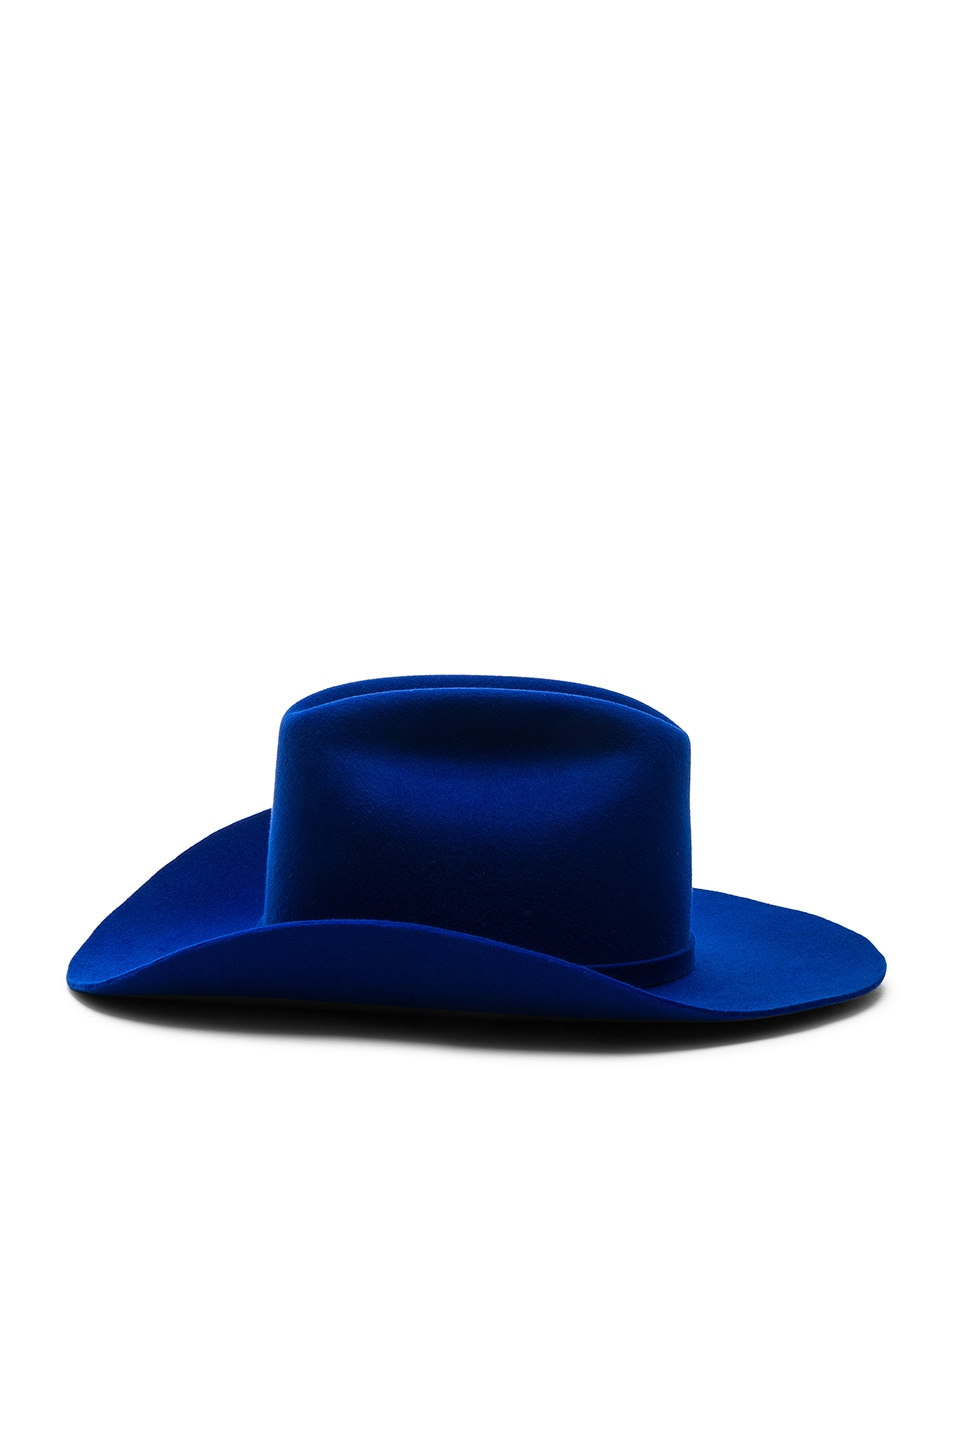 e5b304d586ceff Image 3 of CALVIN KLEIN 205W39NYC Cowboy Hat in Electric Blue